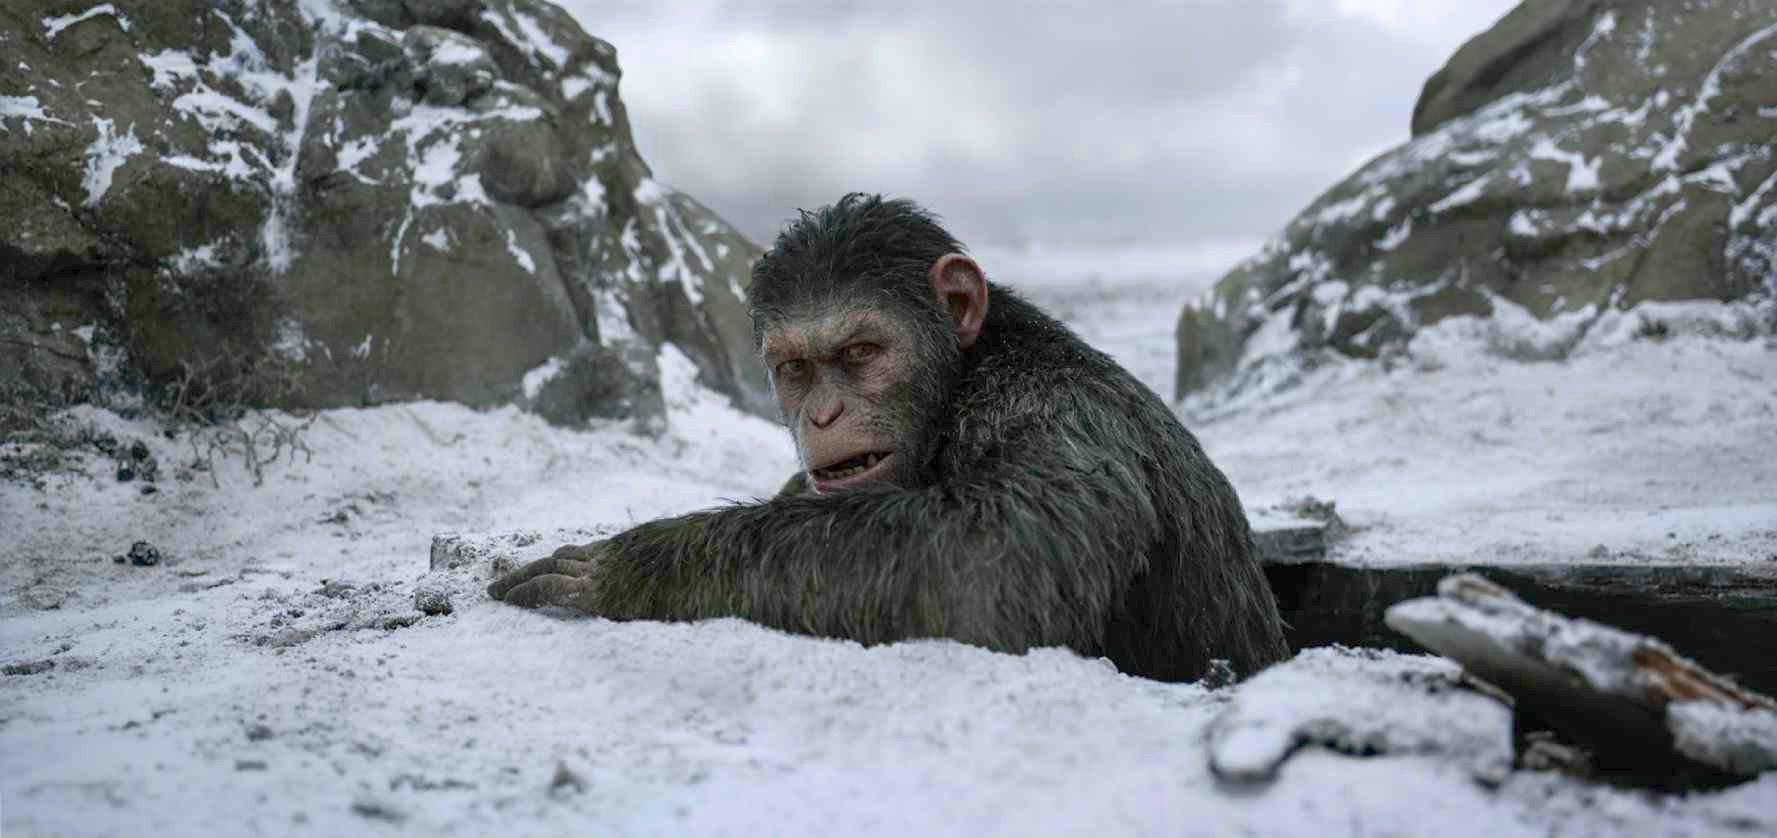 The Final War for the Planet of the Apes Trailer Revealed